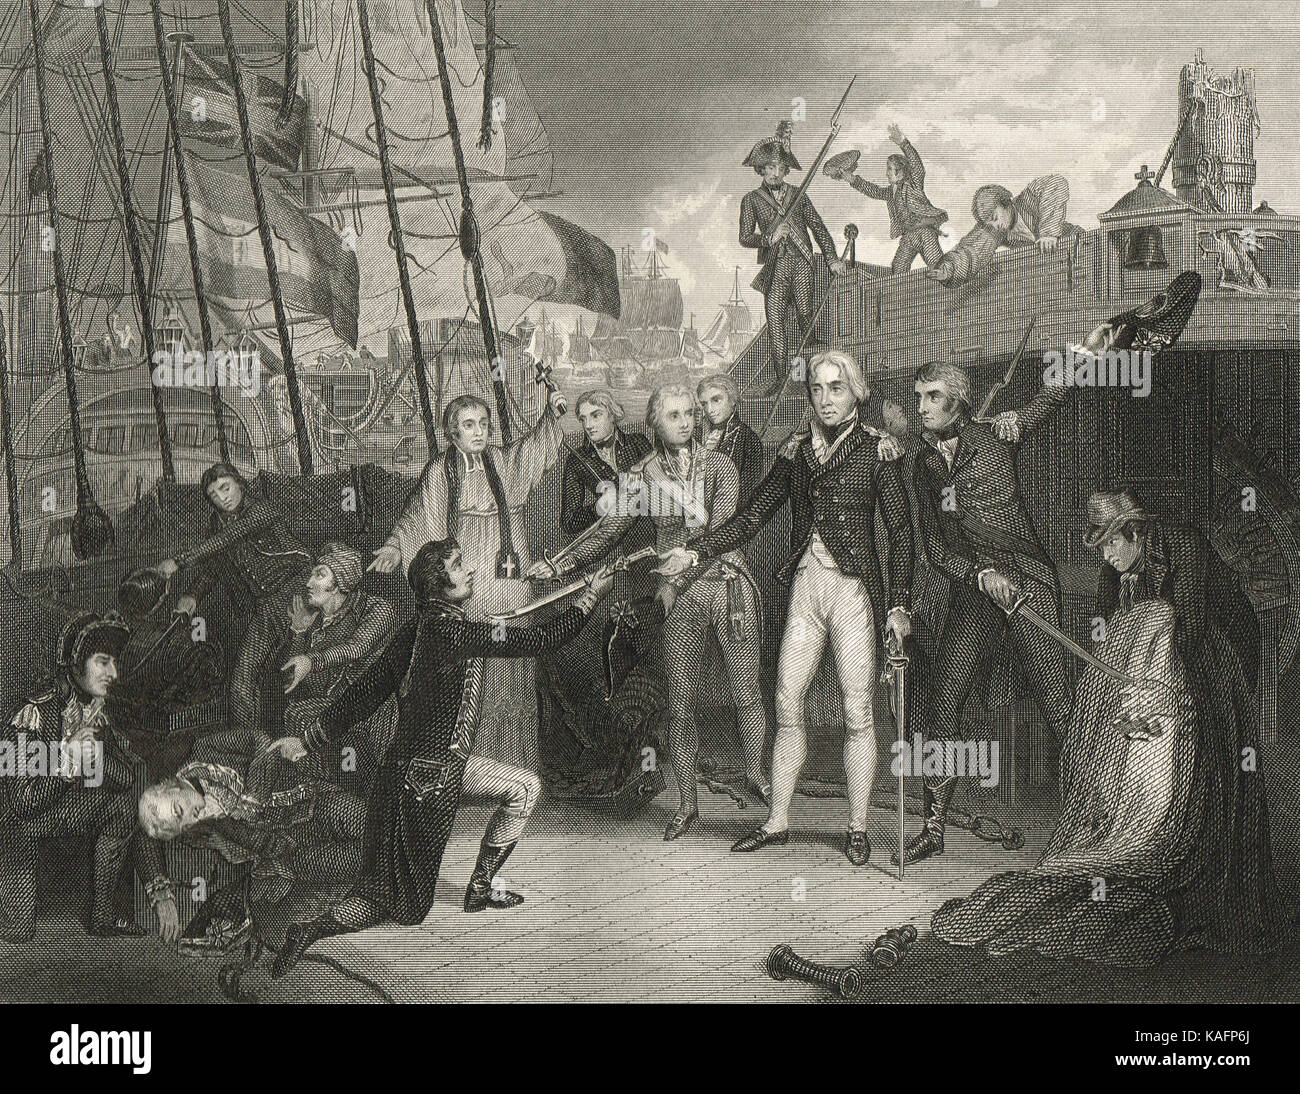 Horatio Nelson, accepting the surrender, receiving the sword of the Spanish captain of The San Josef, Battle of Cape St Vincent, 1797 Stock Photo